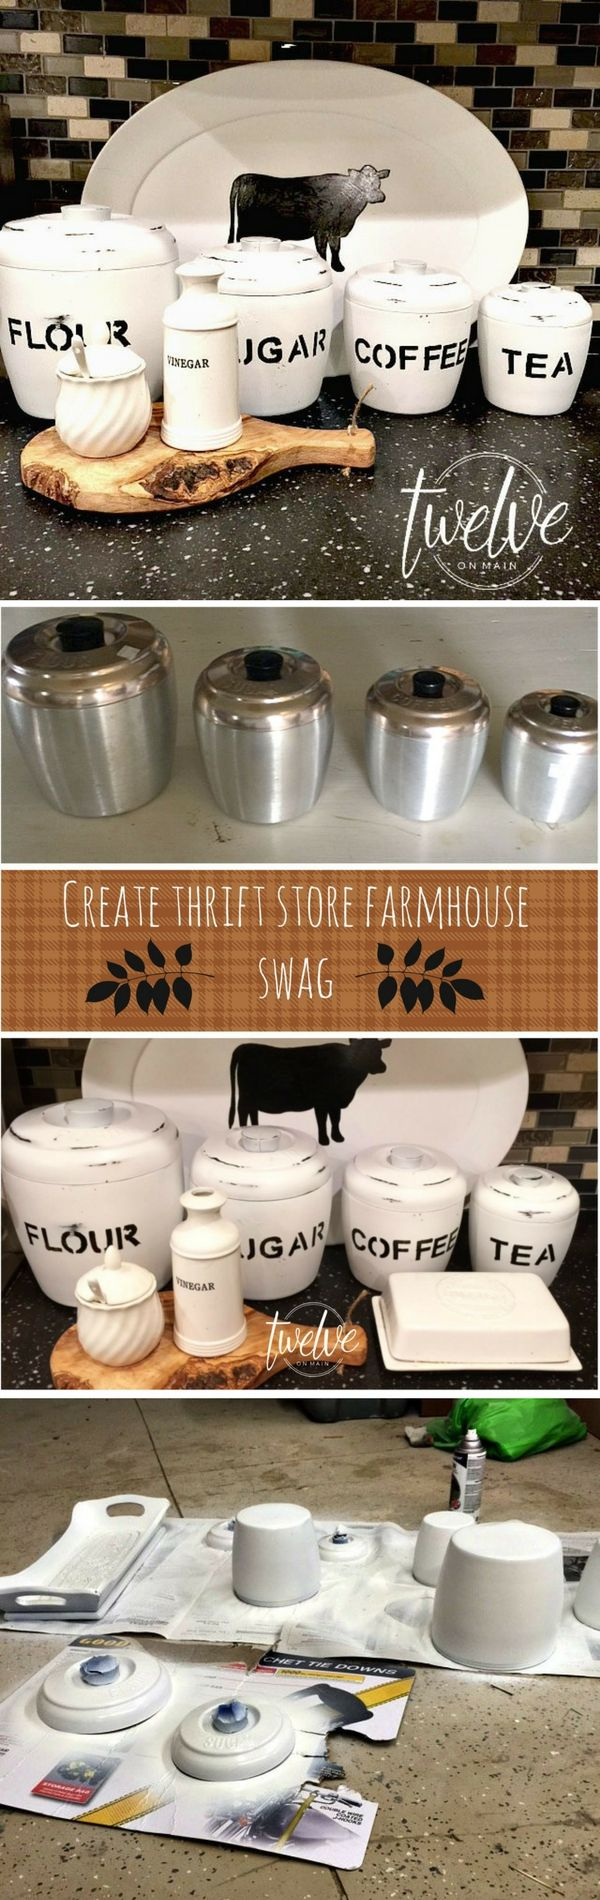 Check out how to make DIY farmhouse style containers from thrift store finds @istandarddesign